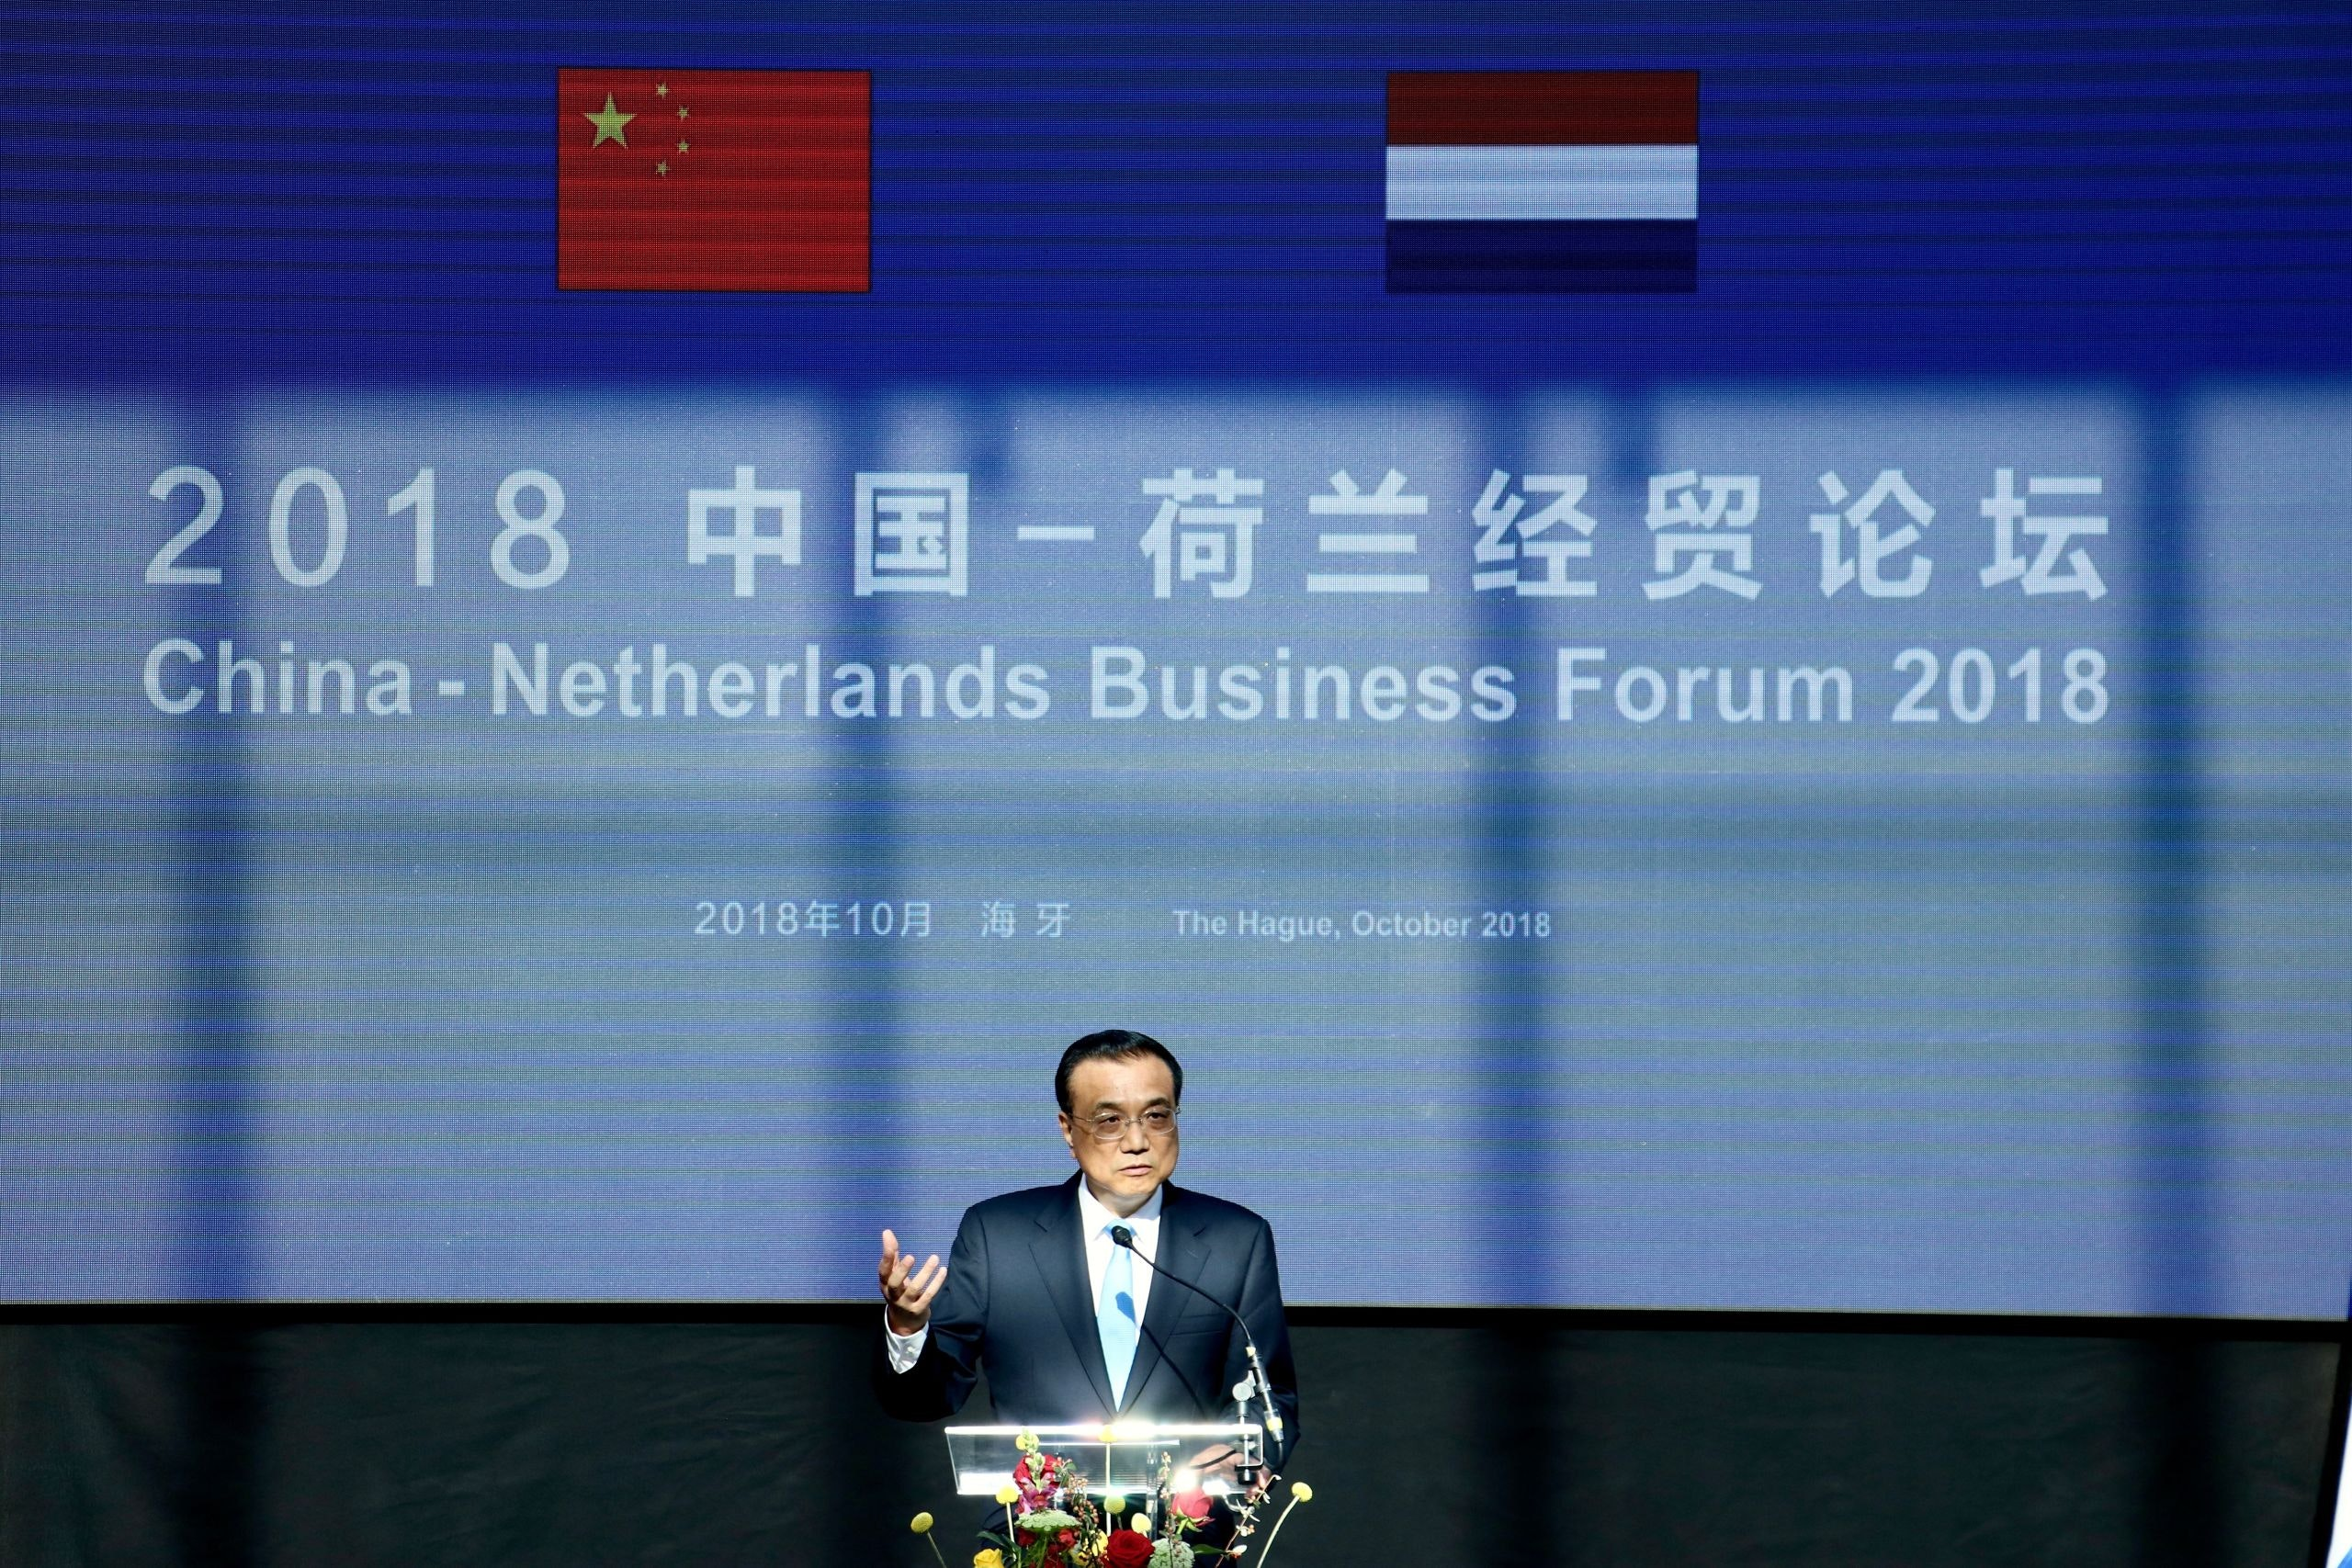 THE HAGUE, NETHERLANDS - OCTOBER 16: Premier of the People's Republic of China Li Keqiang delivers a speech during the Netherlands and China CEO Business Forum in The Hague, Netherlands on October 16, 2018.  Abdullah Asiran / Anadolu Agency